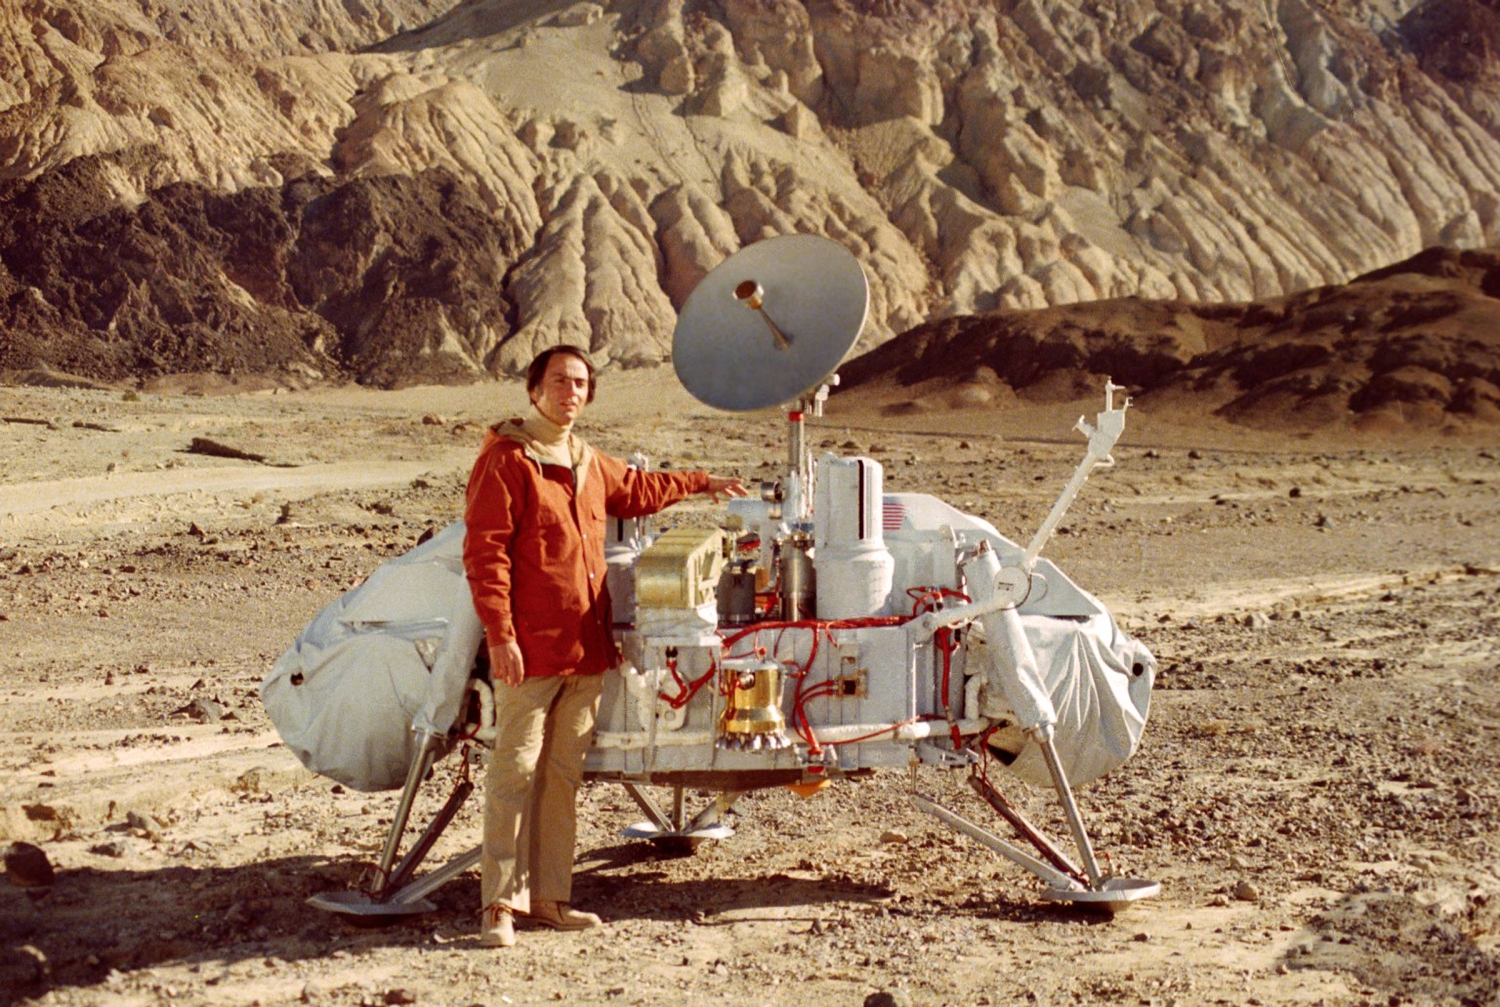 NASA photo of Dr. Carl Sagan with a model of the Mars Viking Lander, in Death Valley, California. Or was it taken on Mars? How could we tell, if we lacked sharpened and practiced critical thinking practices?